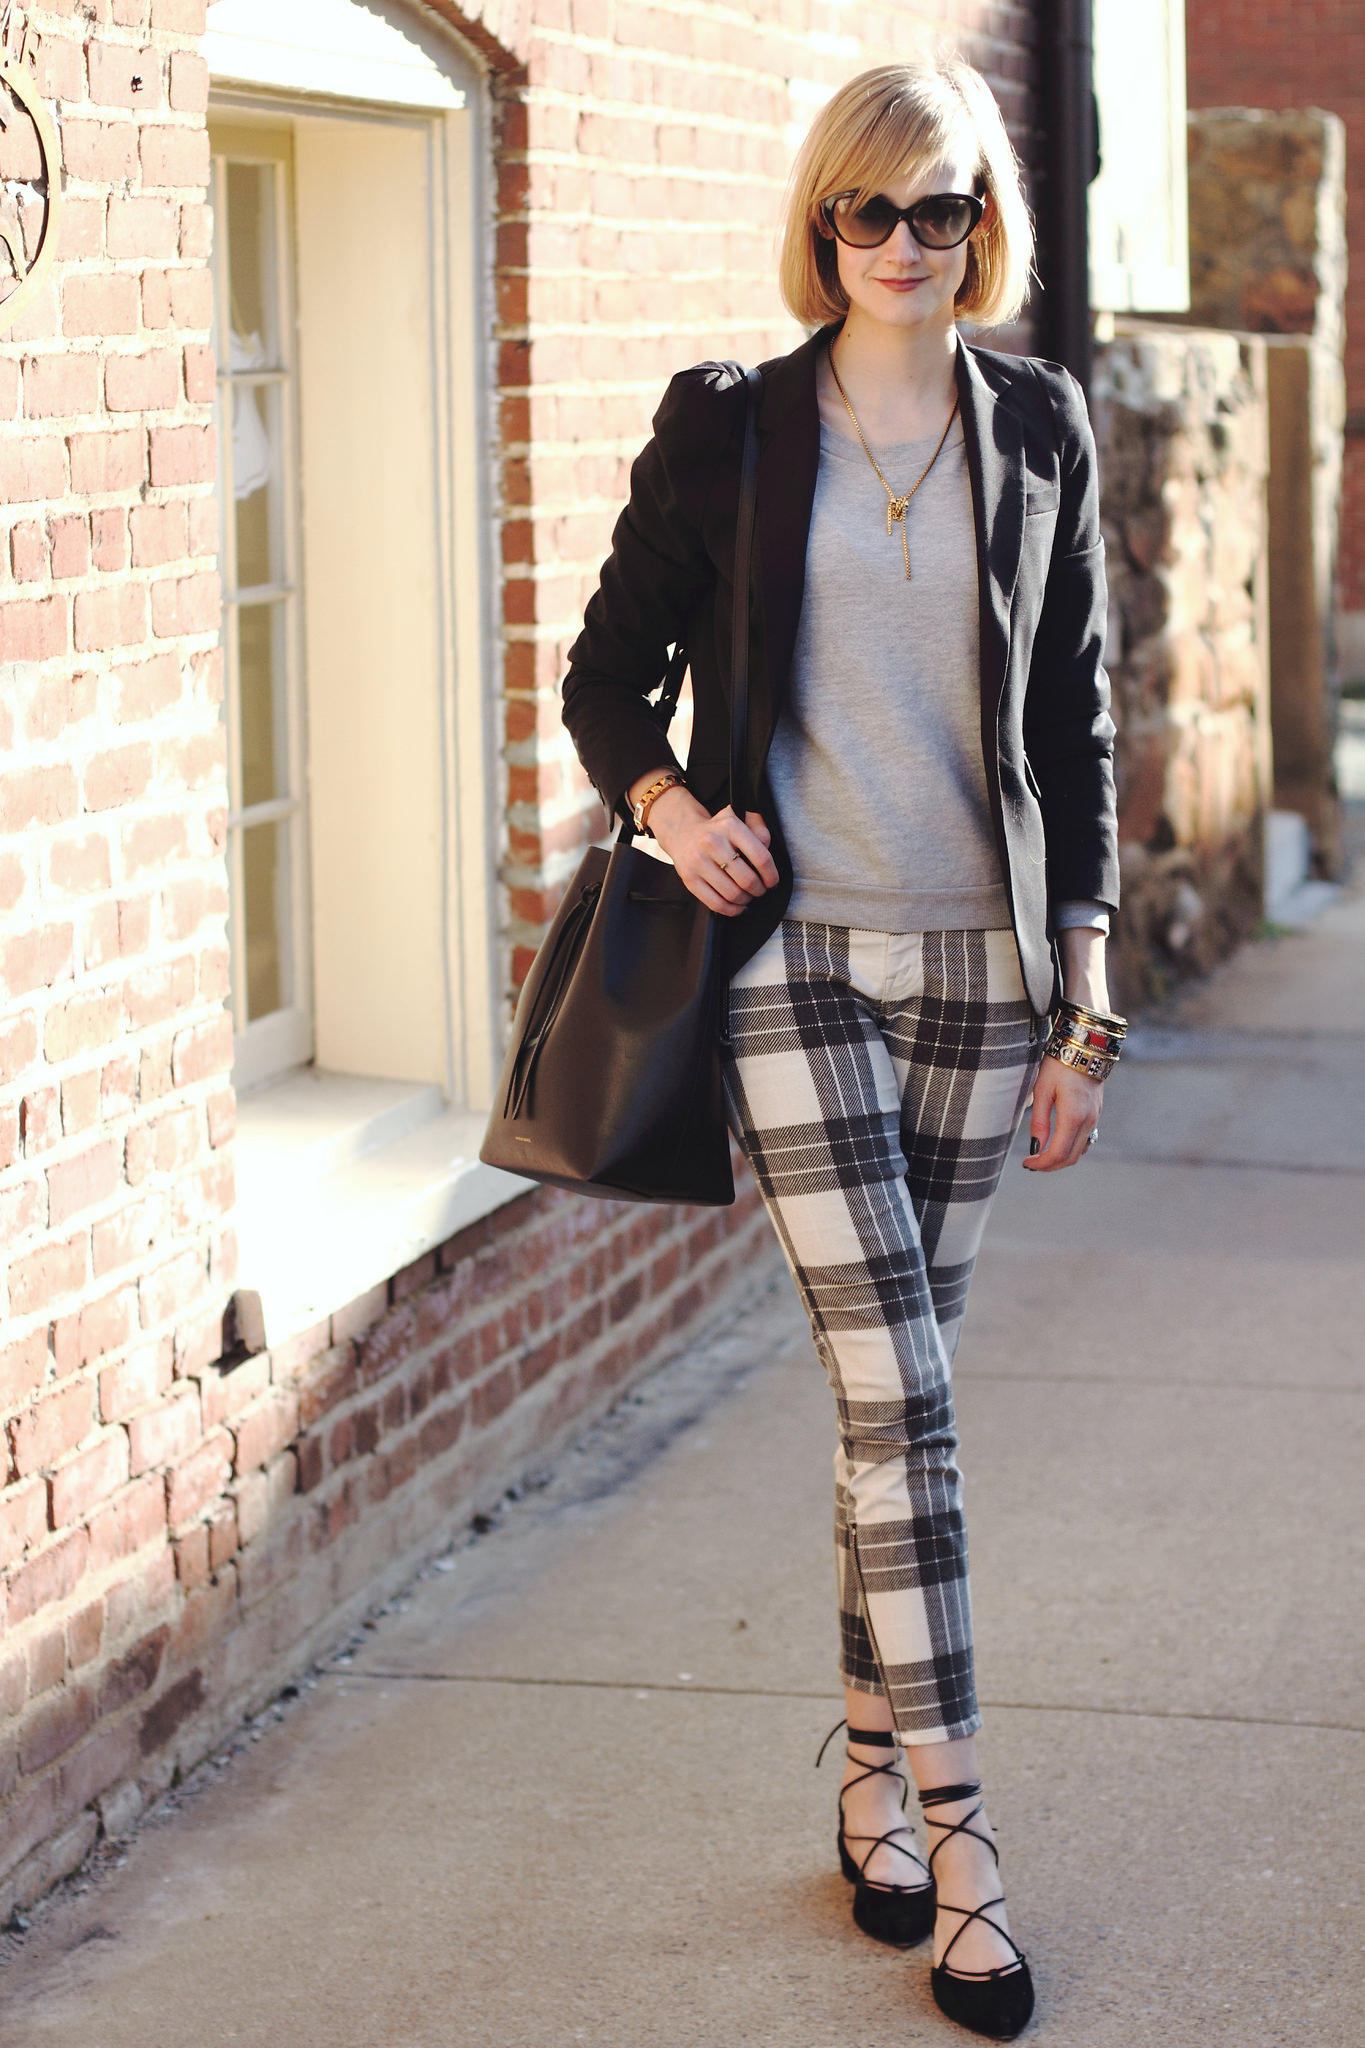 plaid Mother jeans and Stuart Weitzman lace-up flats